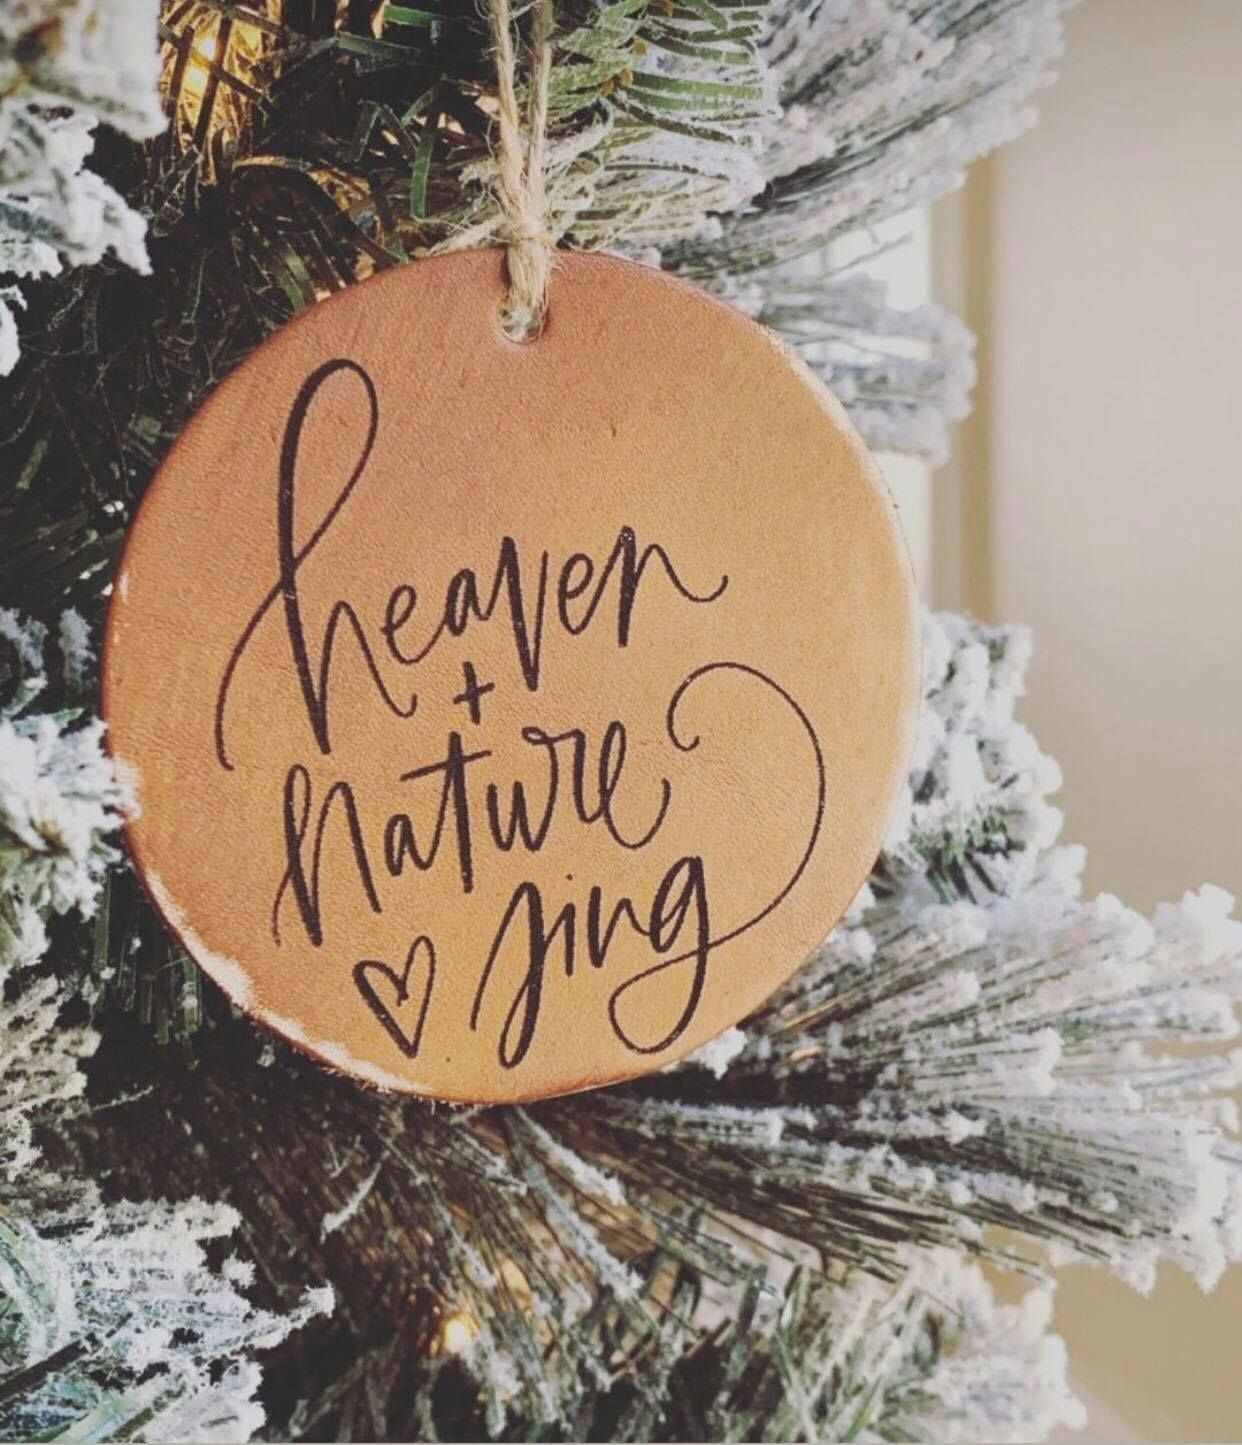 Heaven Nature Sing In 2020 Christmas Love Christmas Christmas Ornaments